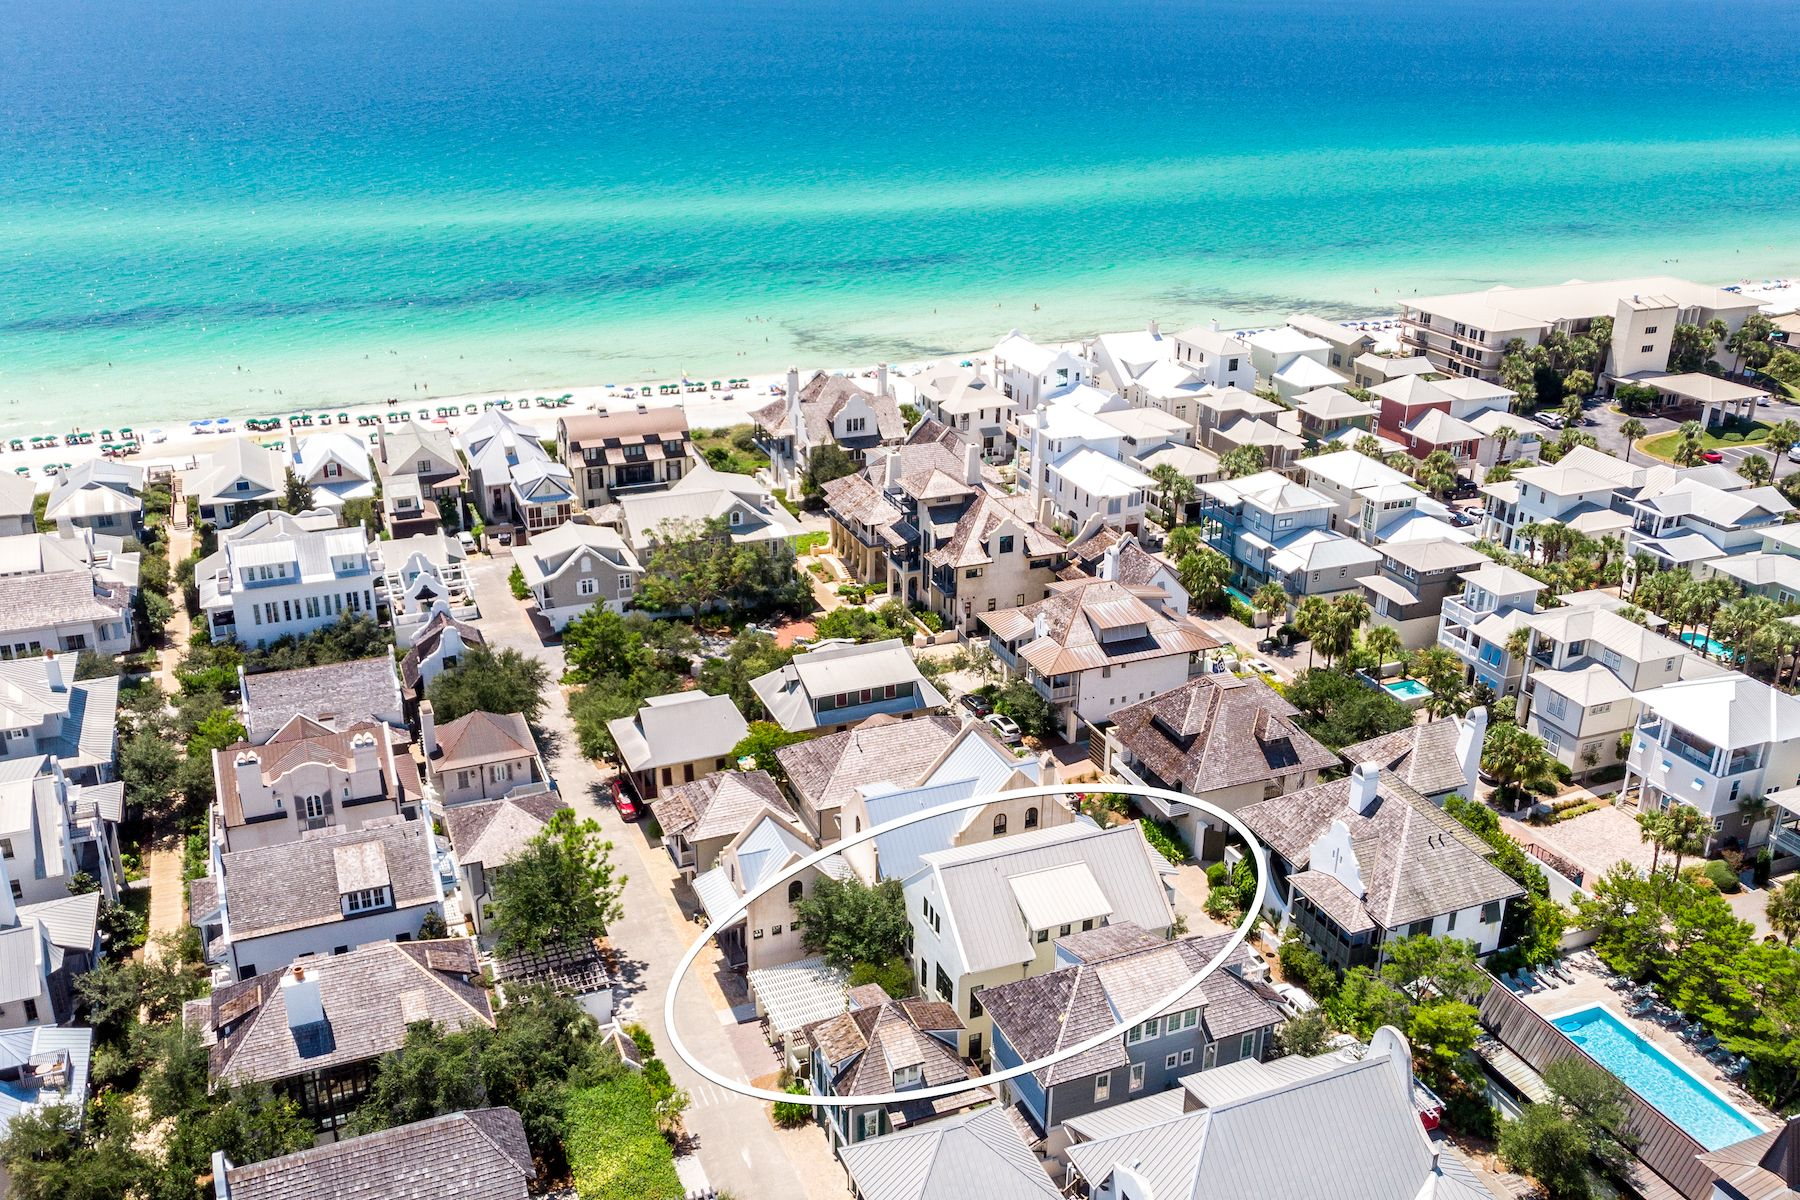 Single Family Homes for Sale at Furnished Gulf View Home South of 30A 307 West Water Street Rosemary Beach, Florida 32461 United States